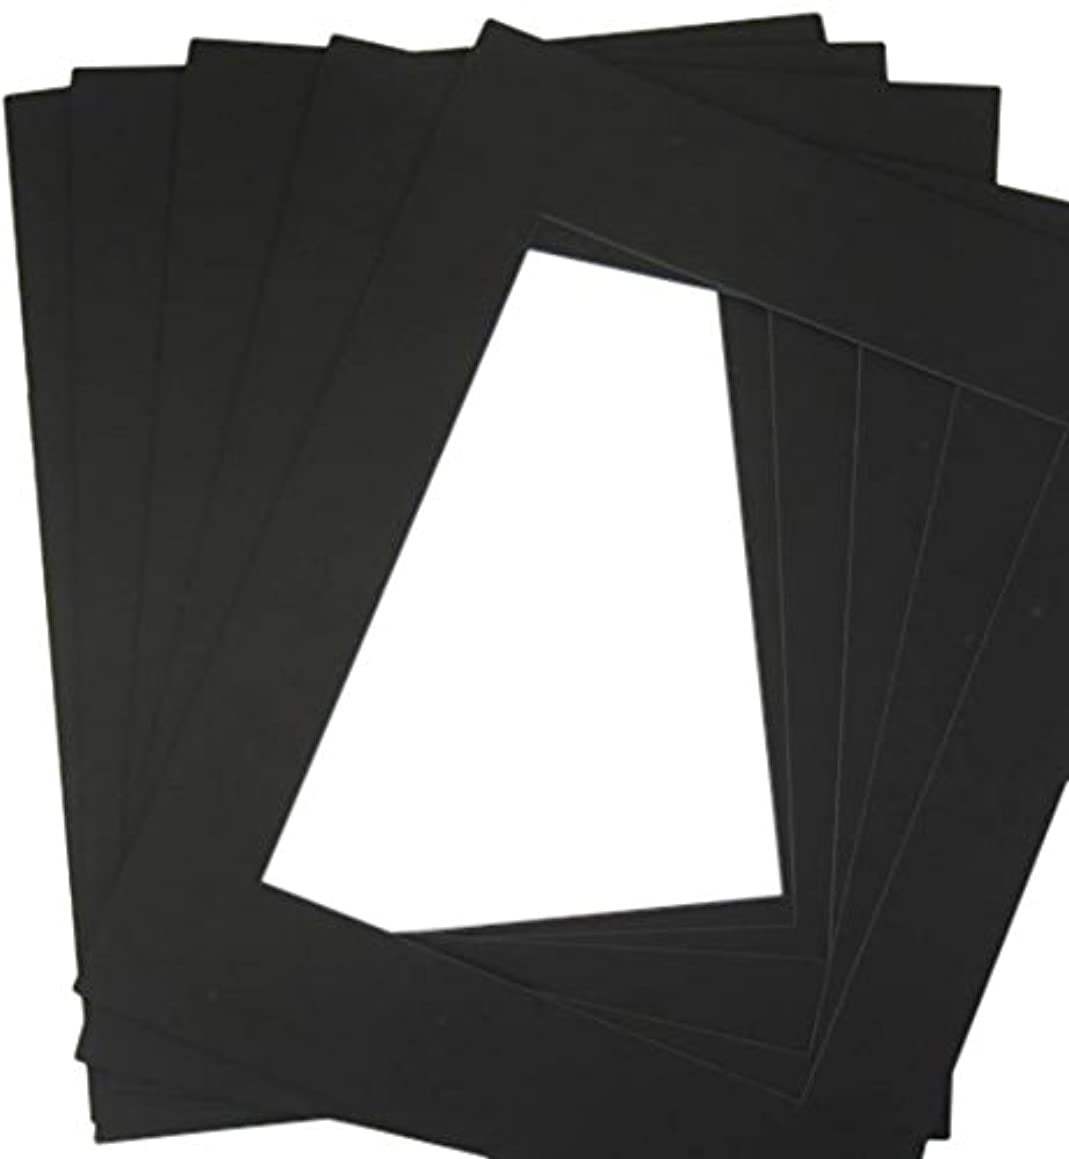 Golden State Art, Pack of 20 11x14 Black/Black Double Mats Mattes with White Core Bevel Cut for 8x10 Photo + Backing + Bags